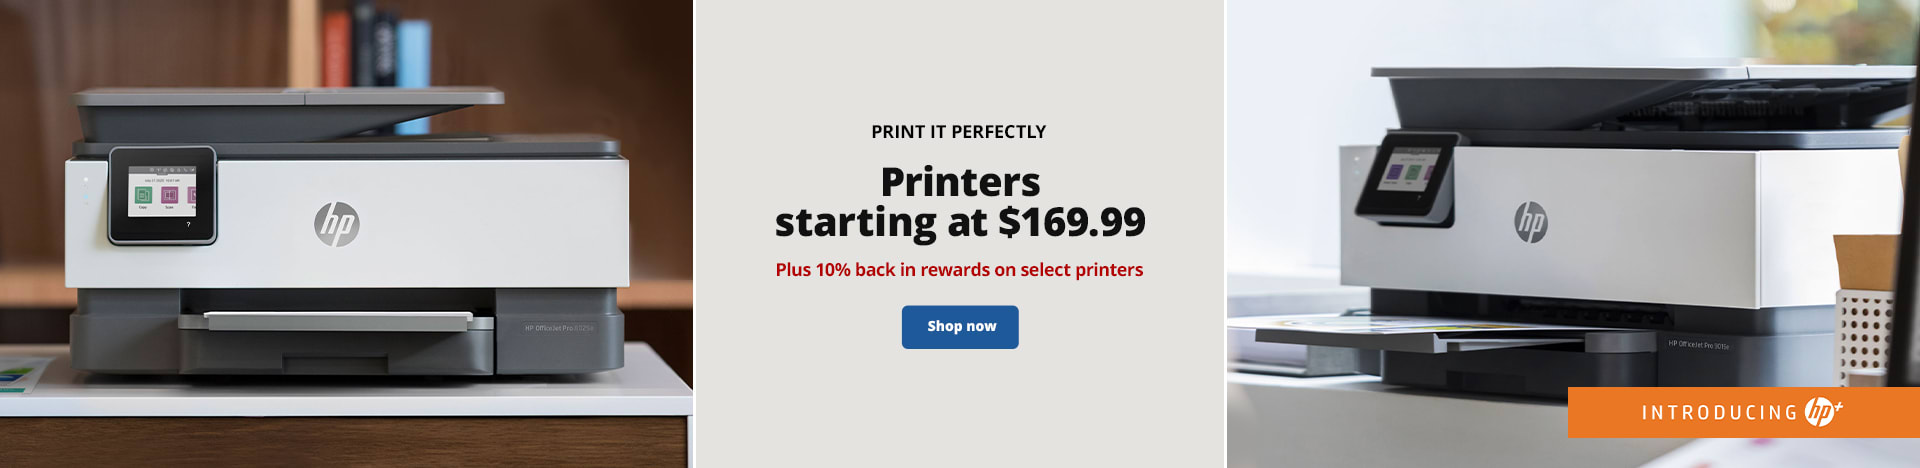 Print It Perfectly. Printers starting at $169.99